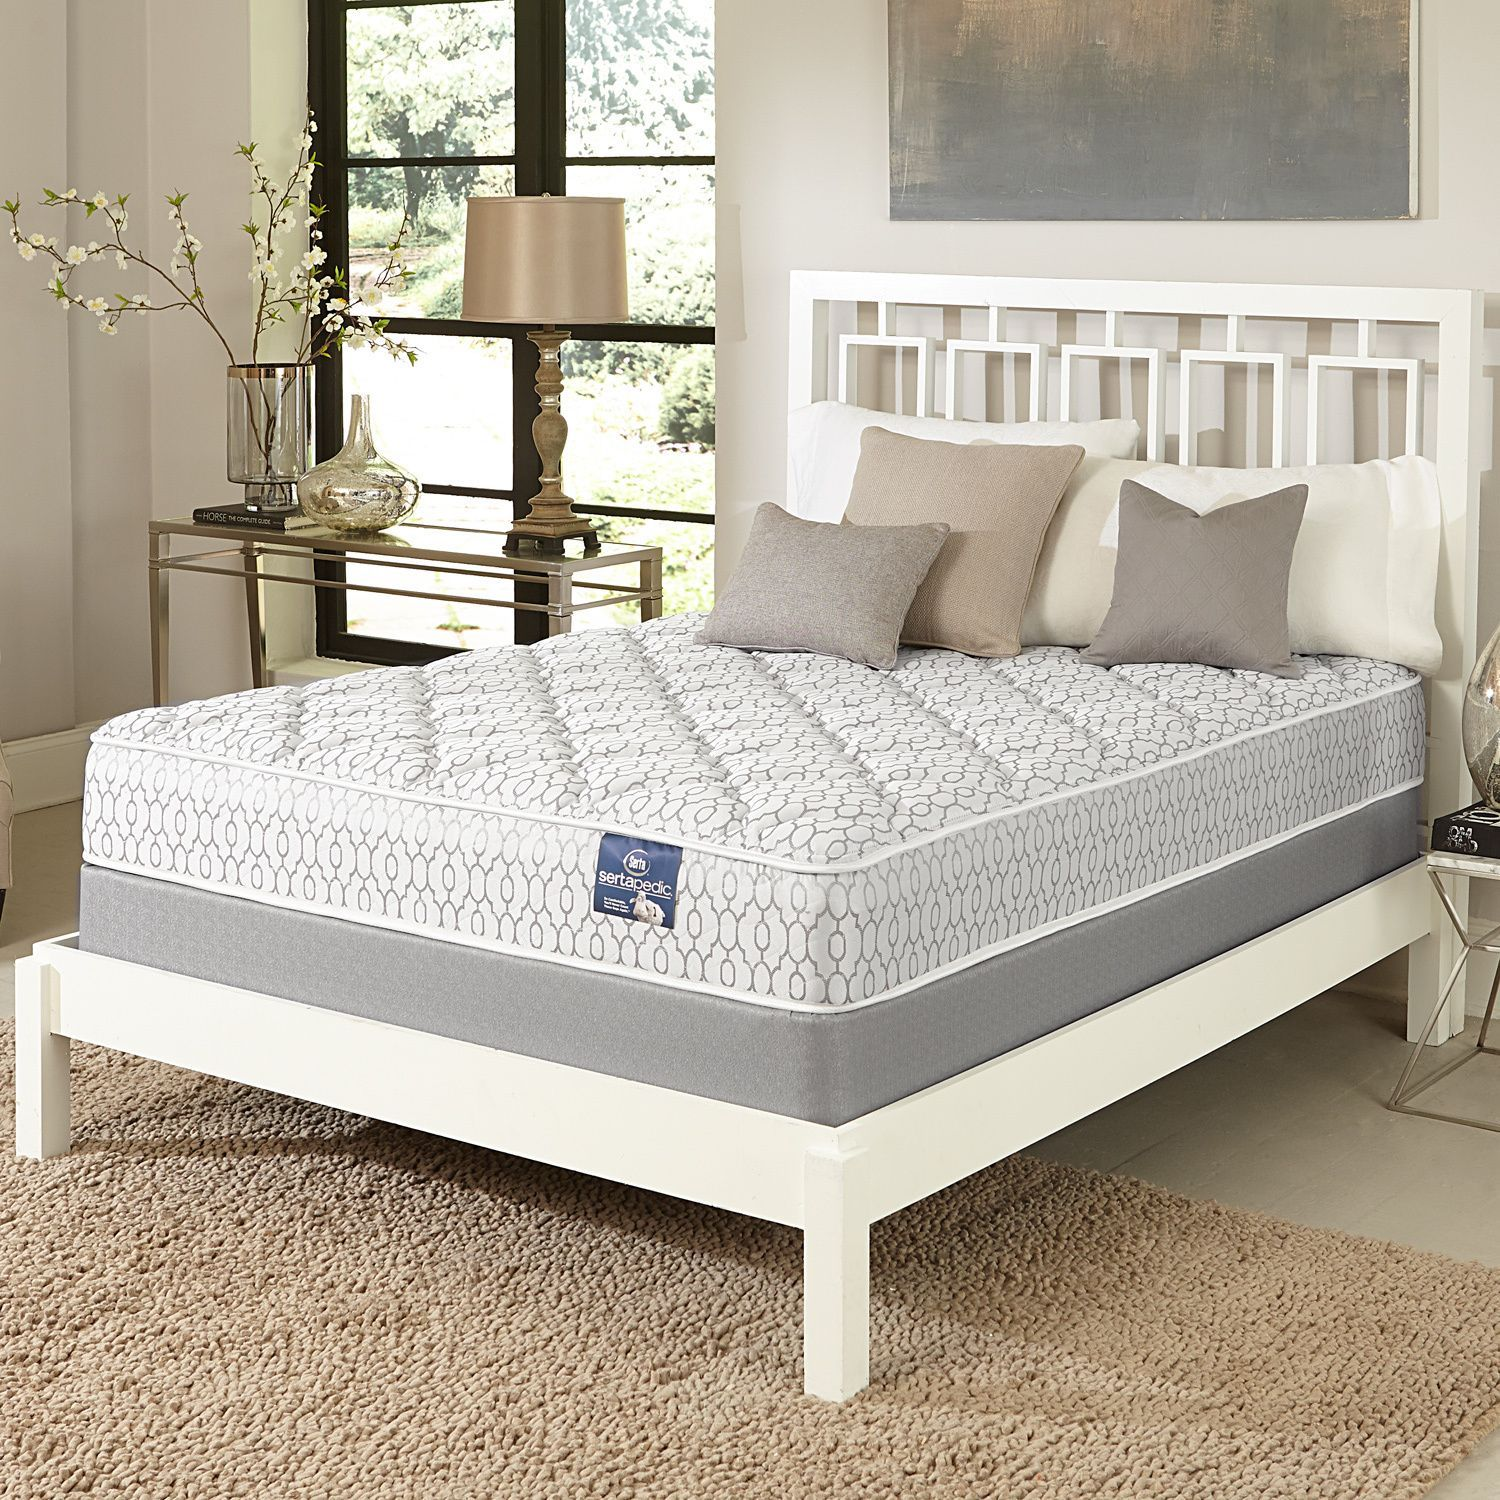 mattress king mattress king m systym co